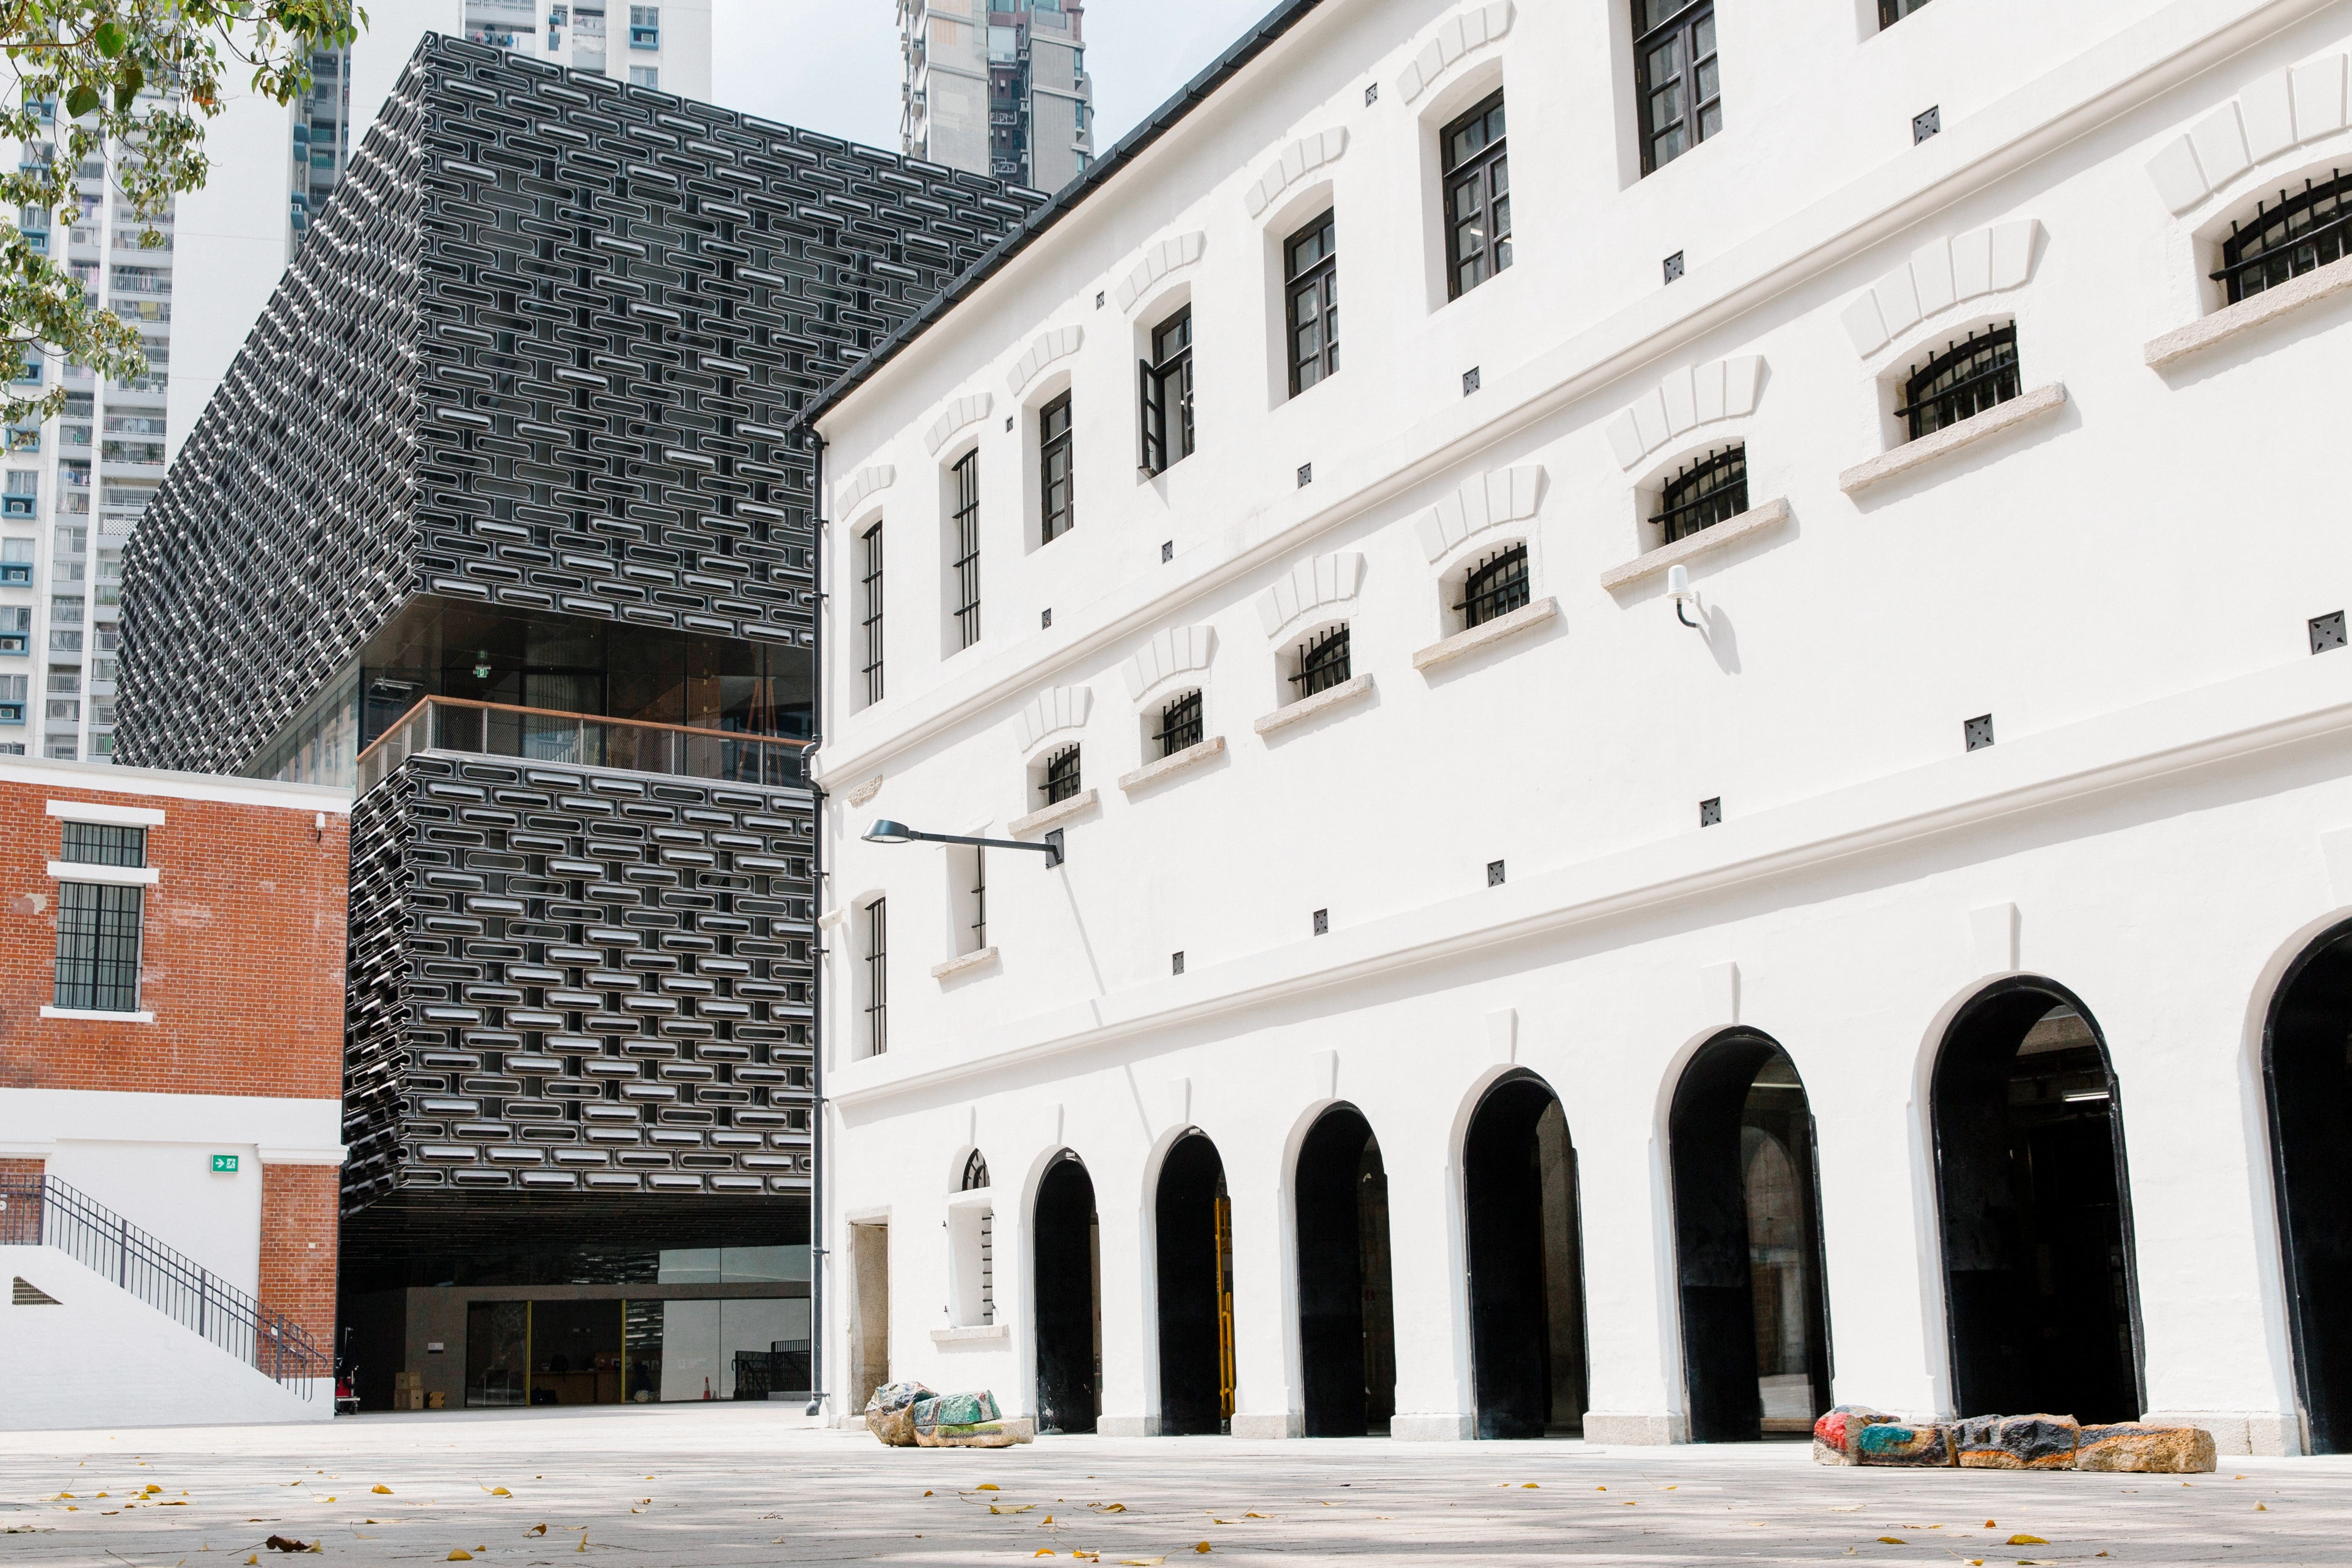 The white Victorian facade of the Tai Kwun Centre for Heritage and Arts with a modern black and grey building behind